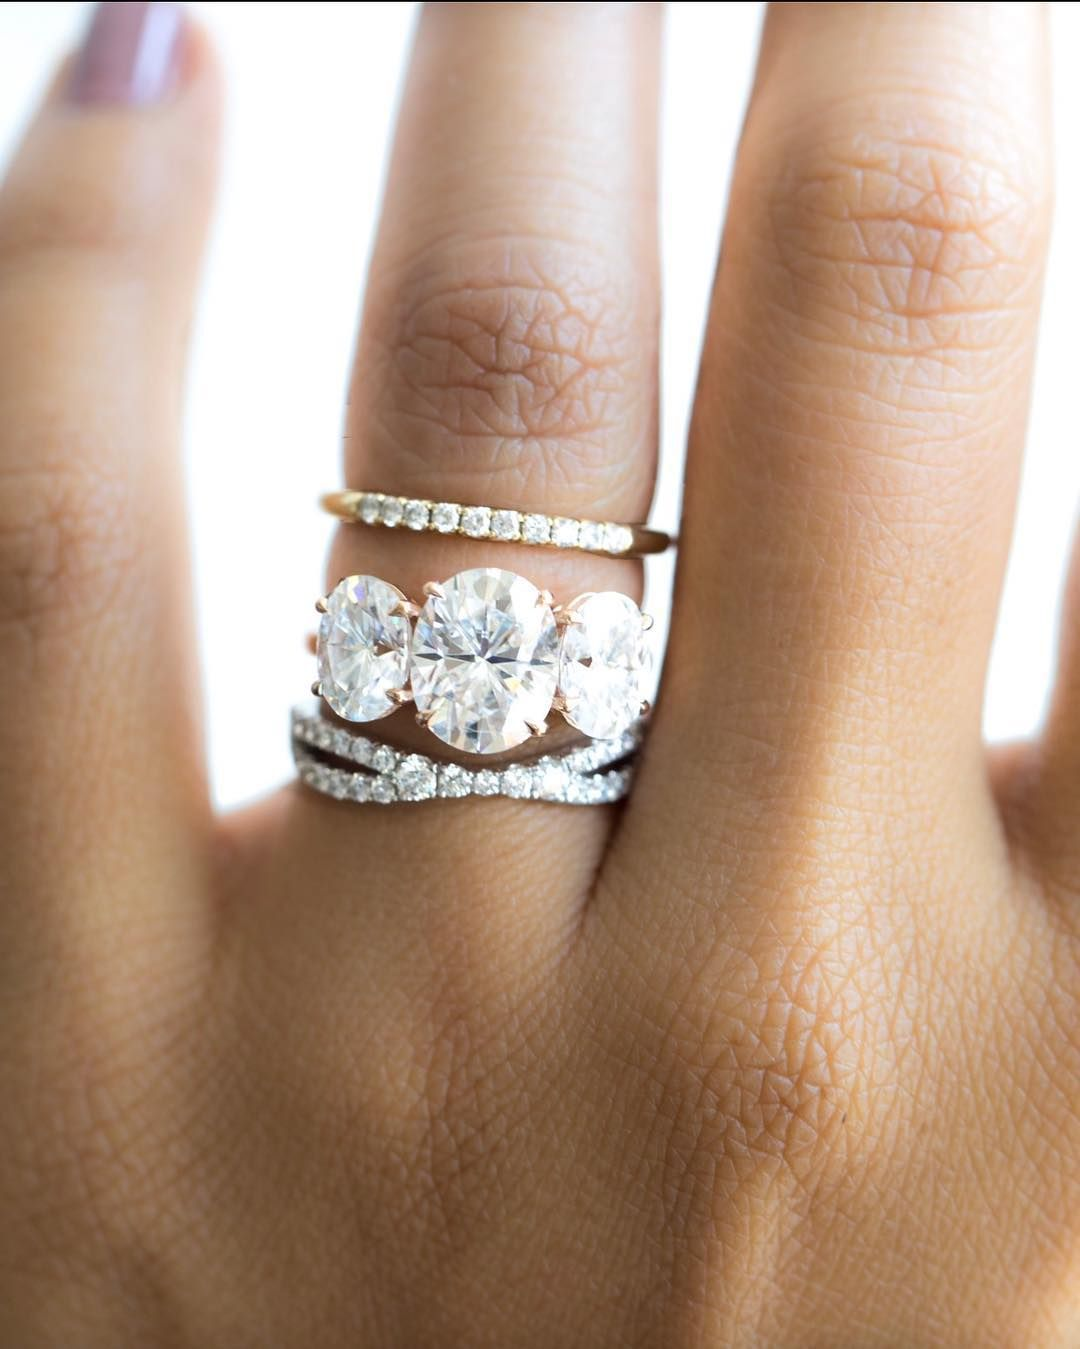 Best Wedding Band For Three Stone Engagement Ring